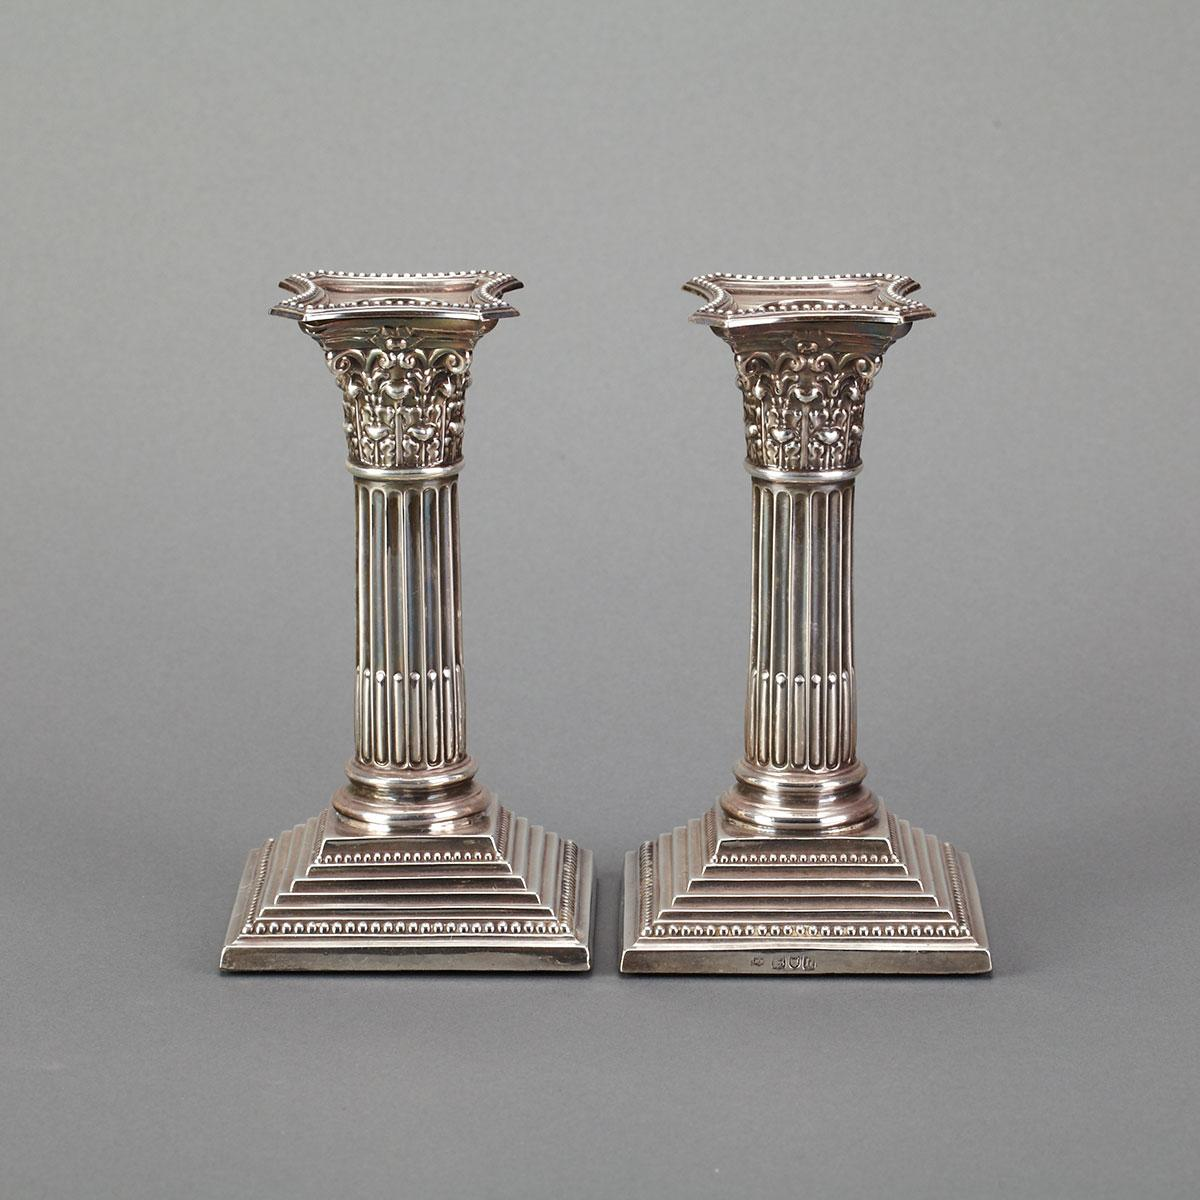 Pair of Edwardian Silver Corinthian Columnar Candlesticks, George Maudsley & David Fullerton, London, 1903